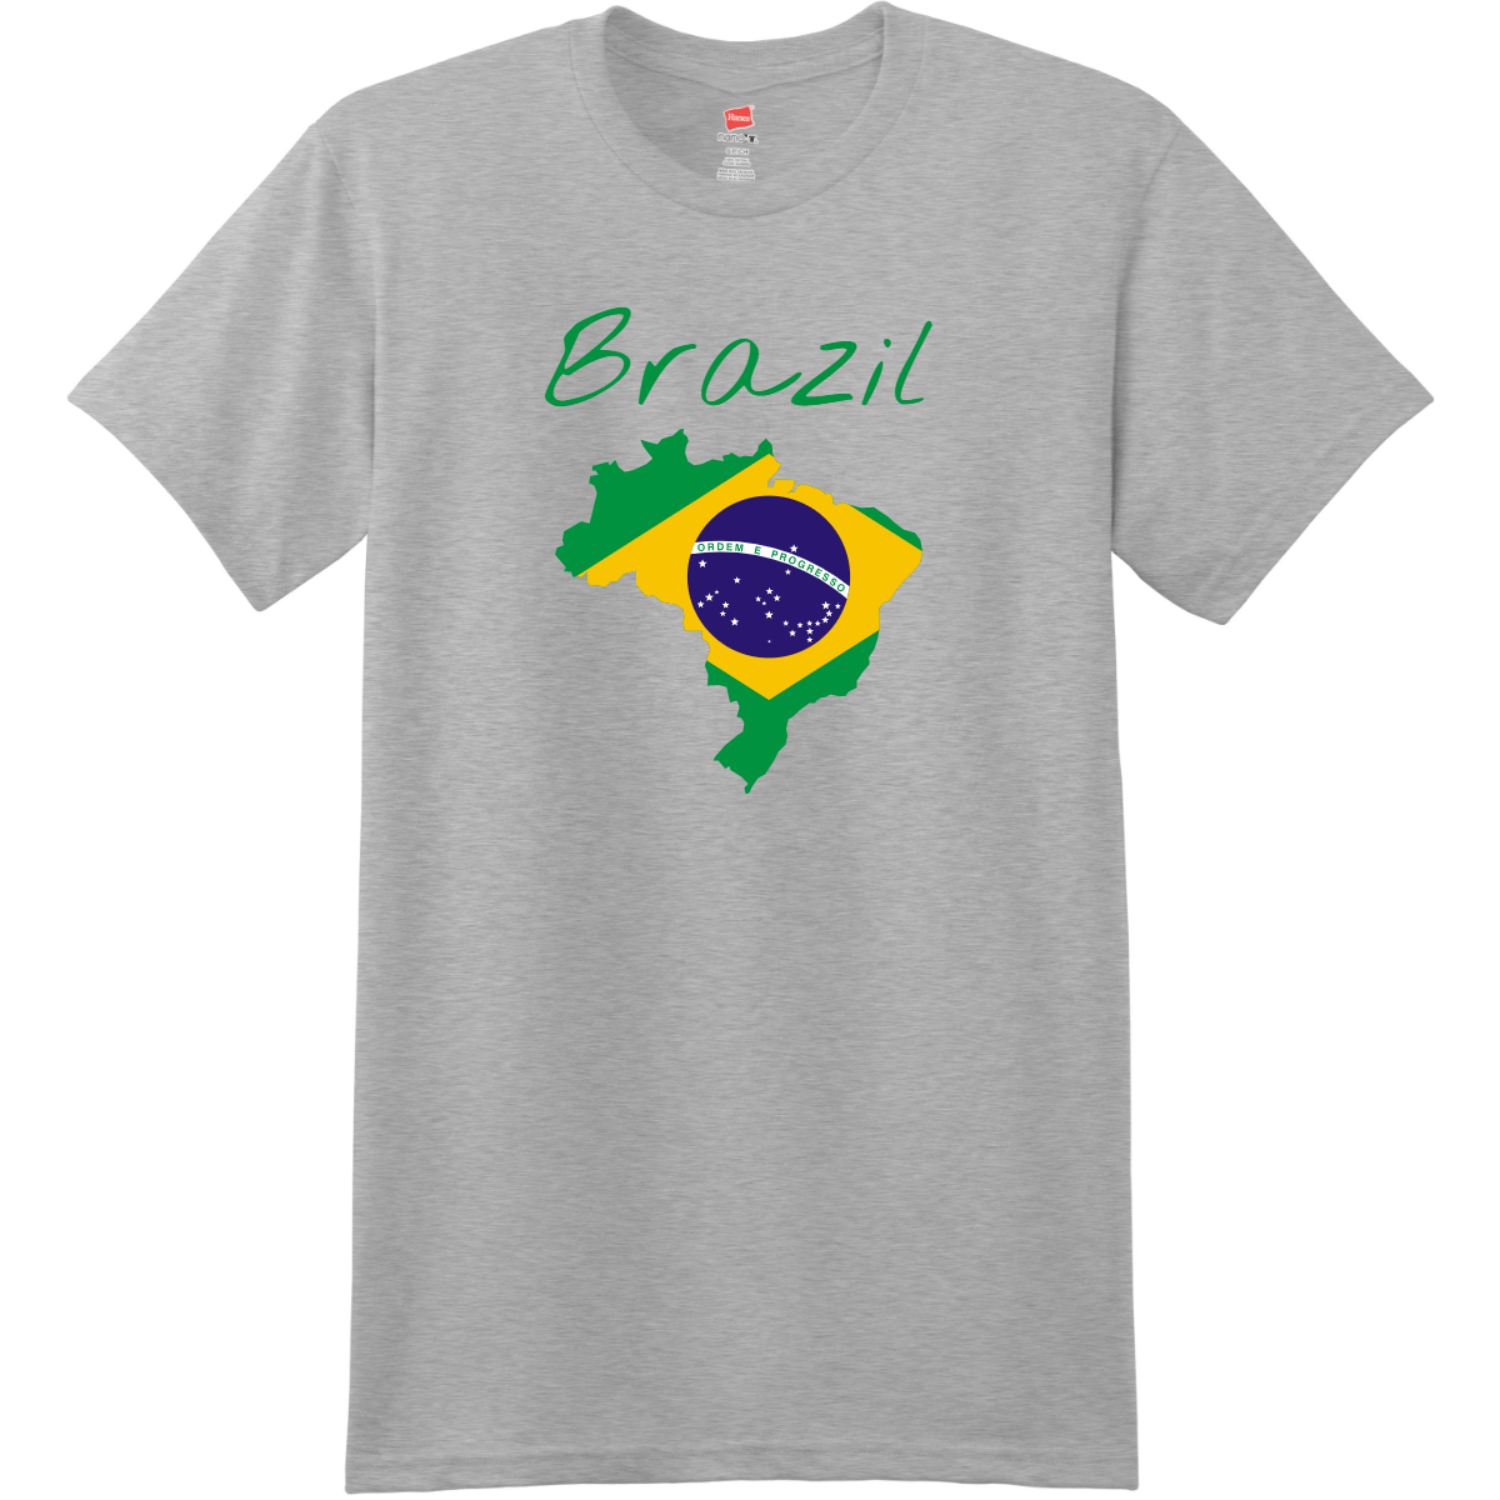 Brazil Country Flag T Shirt Light Steel Hanes Nano 4980 Ringspun Cotton T Shirt